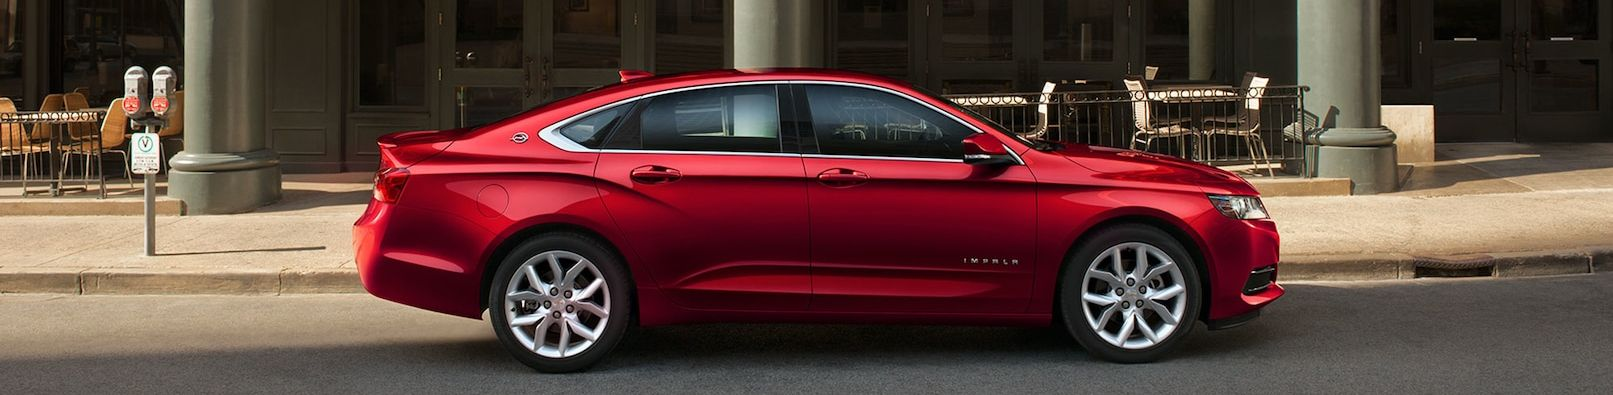 2019 Chevrolet Impala Financing near Orland Park, IL